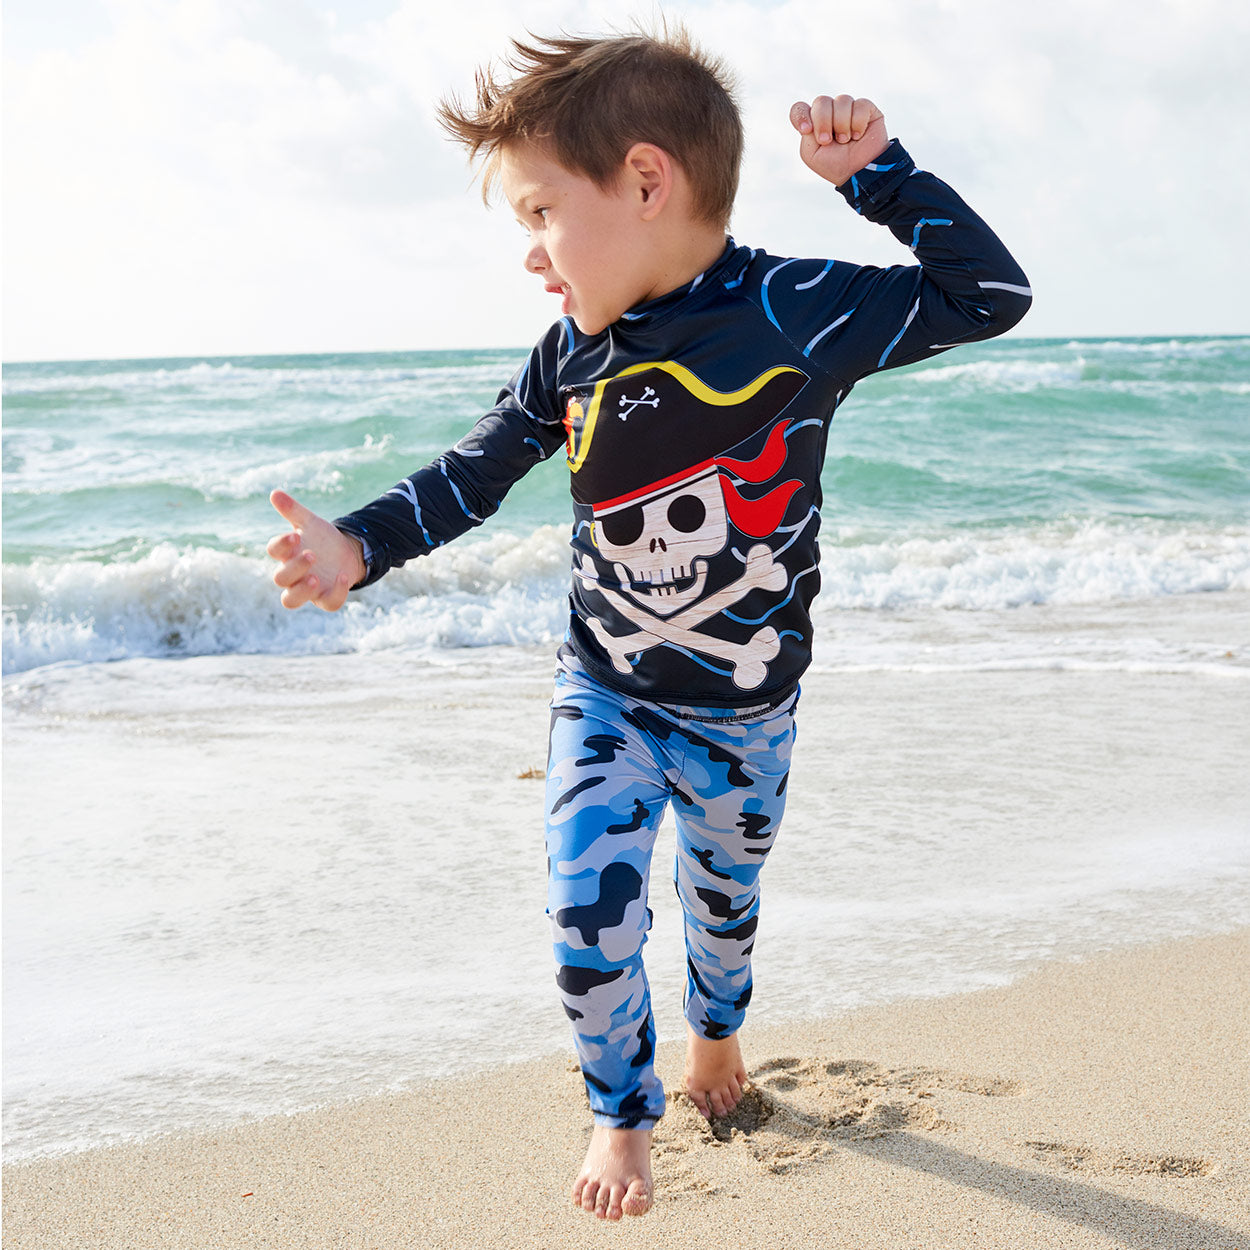 Fun Pirate Top Front Rash Guard Set Boy Dancing Under The Sun Beach Sunpoplife